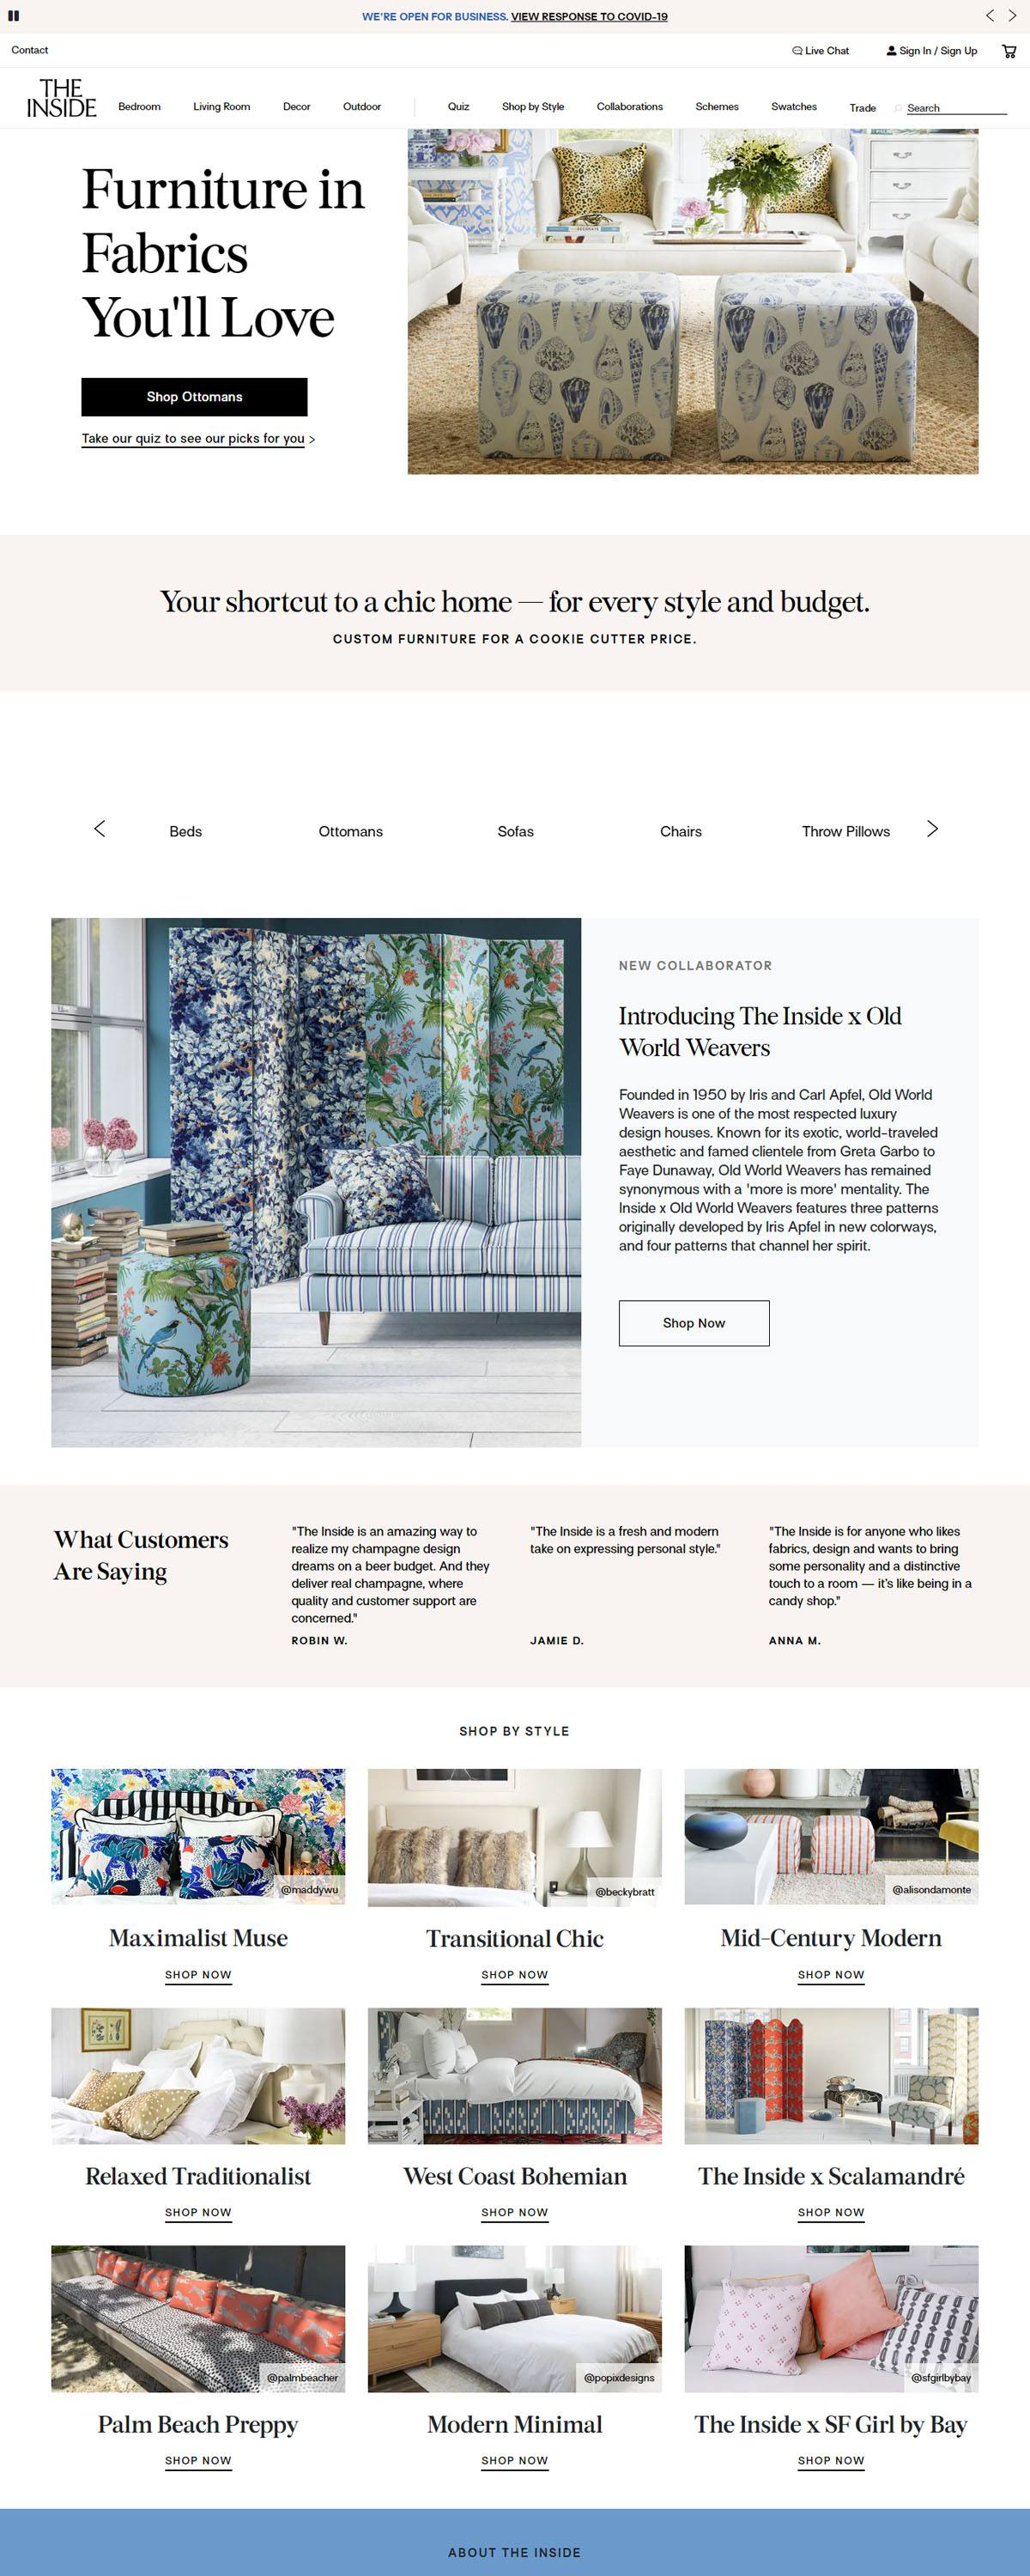 eCommerce website: The Inside